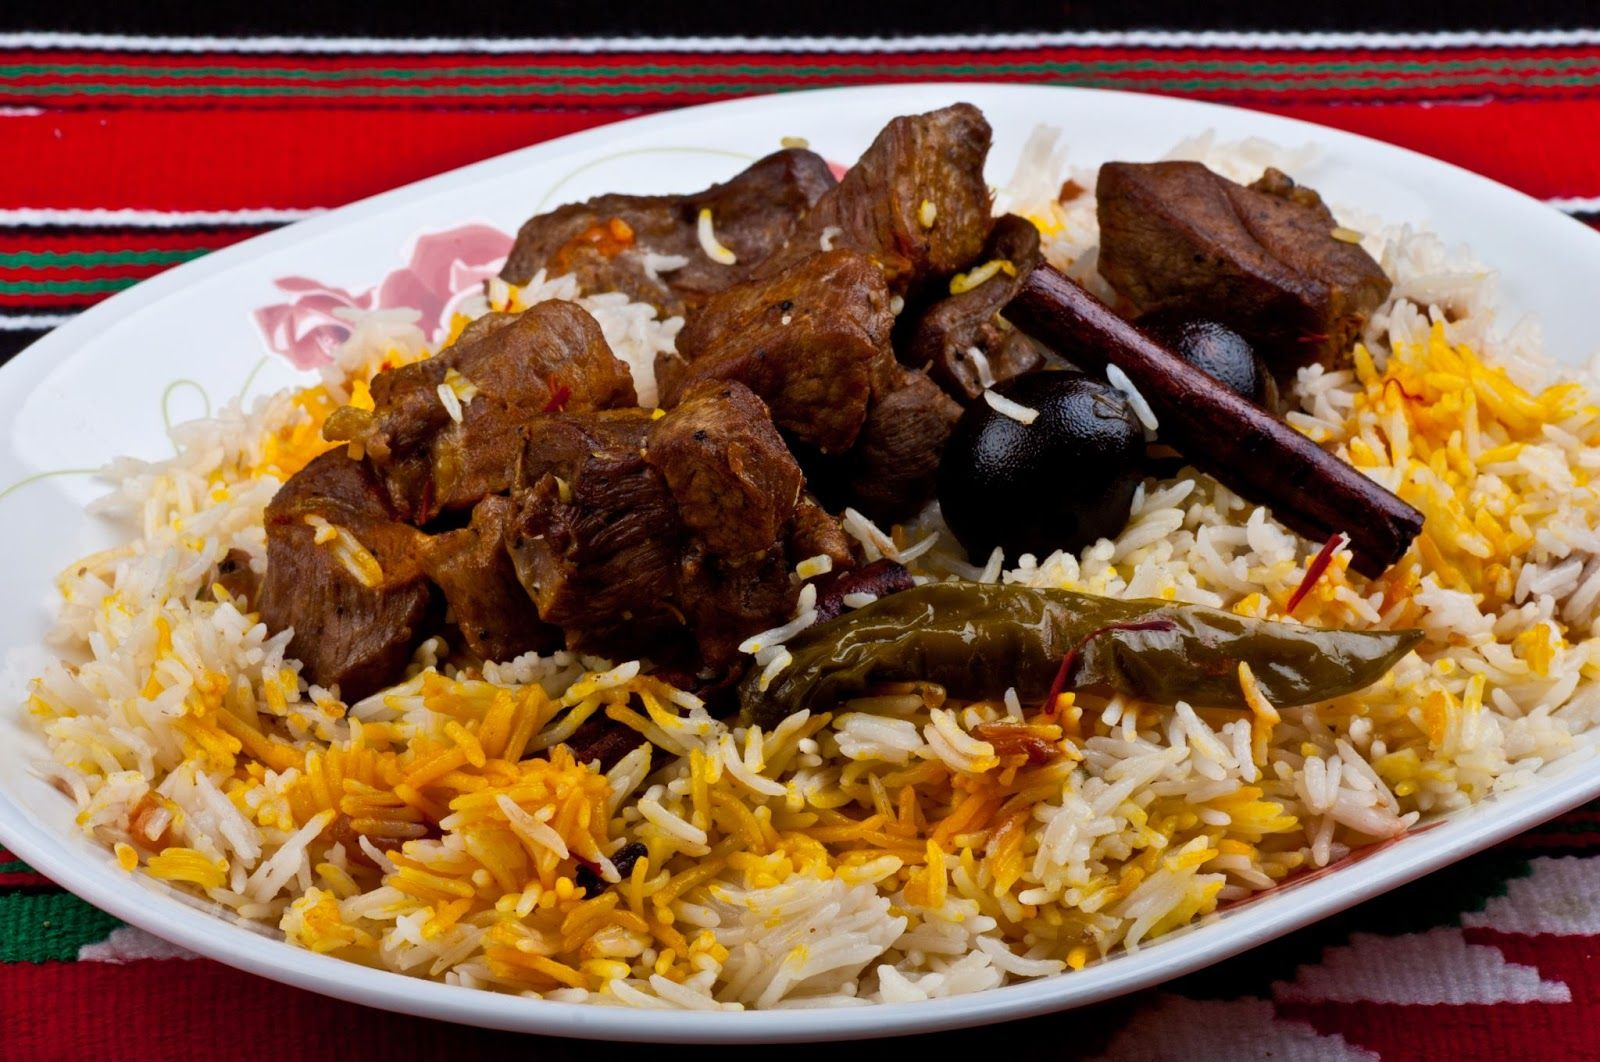 For those who love arabic food i would suggest you try this recipe for those who love arabic food i would suggest you try this recipe by chef forumfinder Gallery